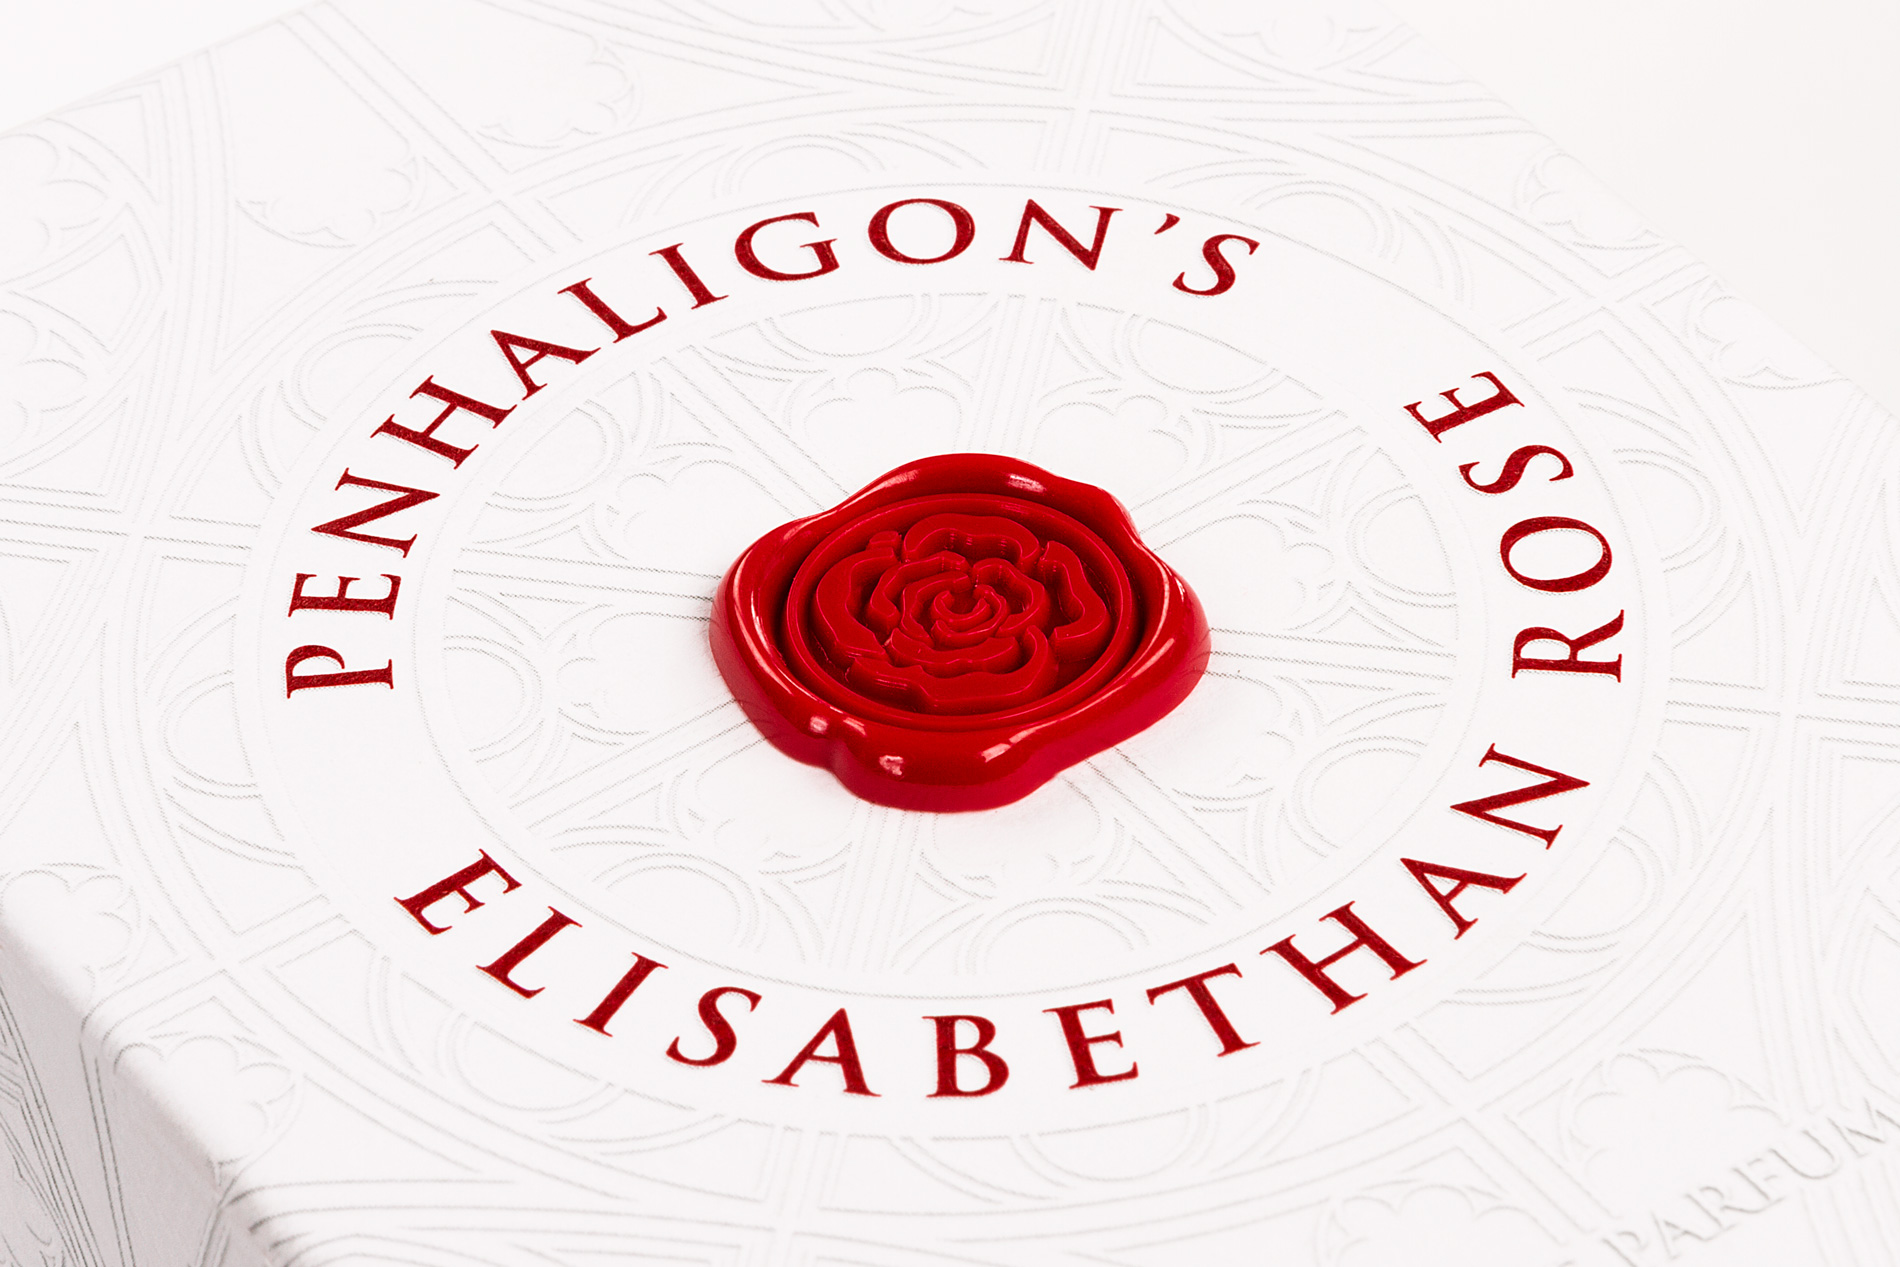 Packaging redesign Elisabethan Rose